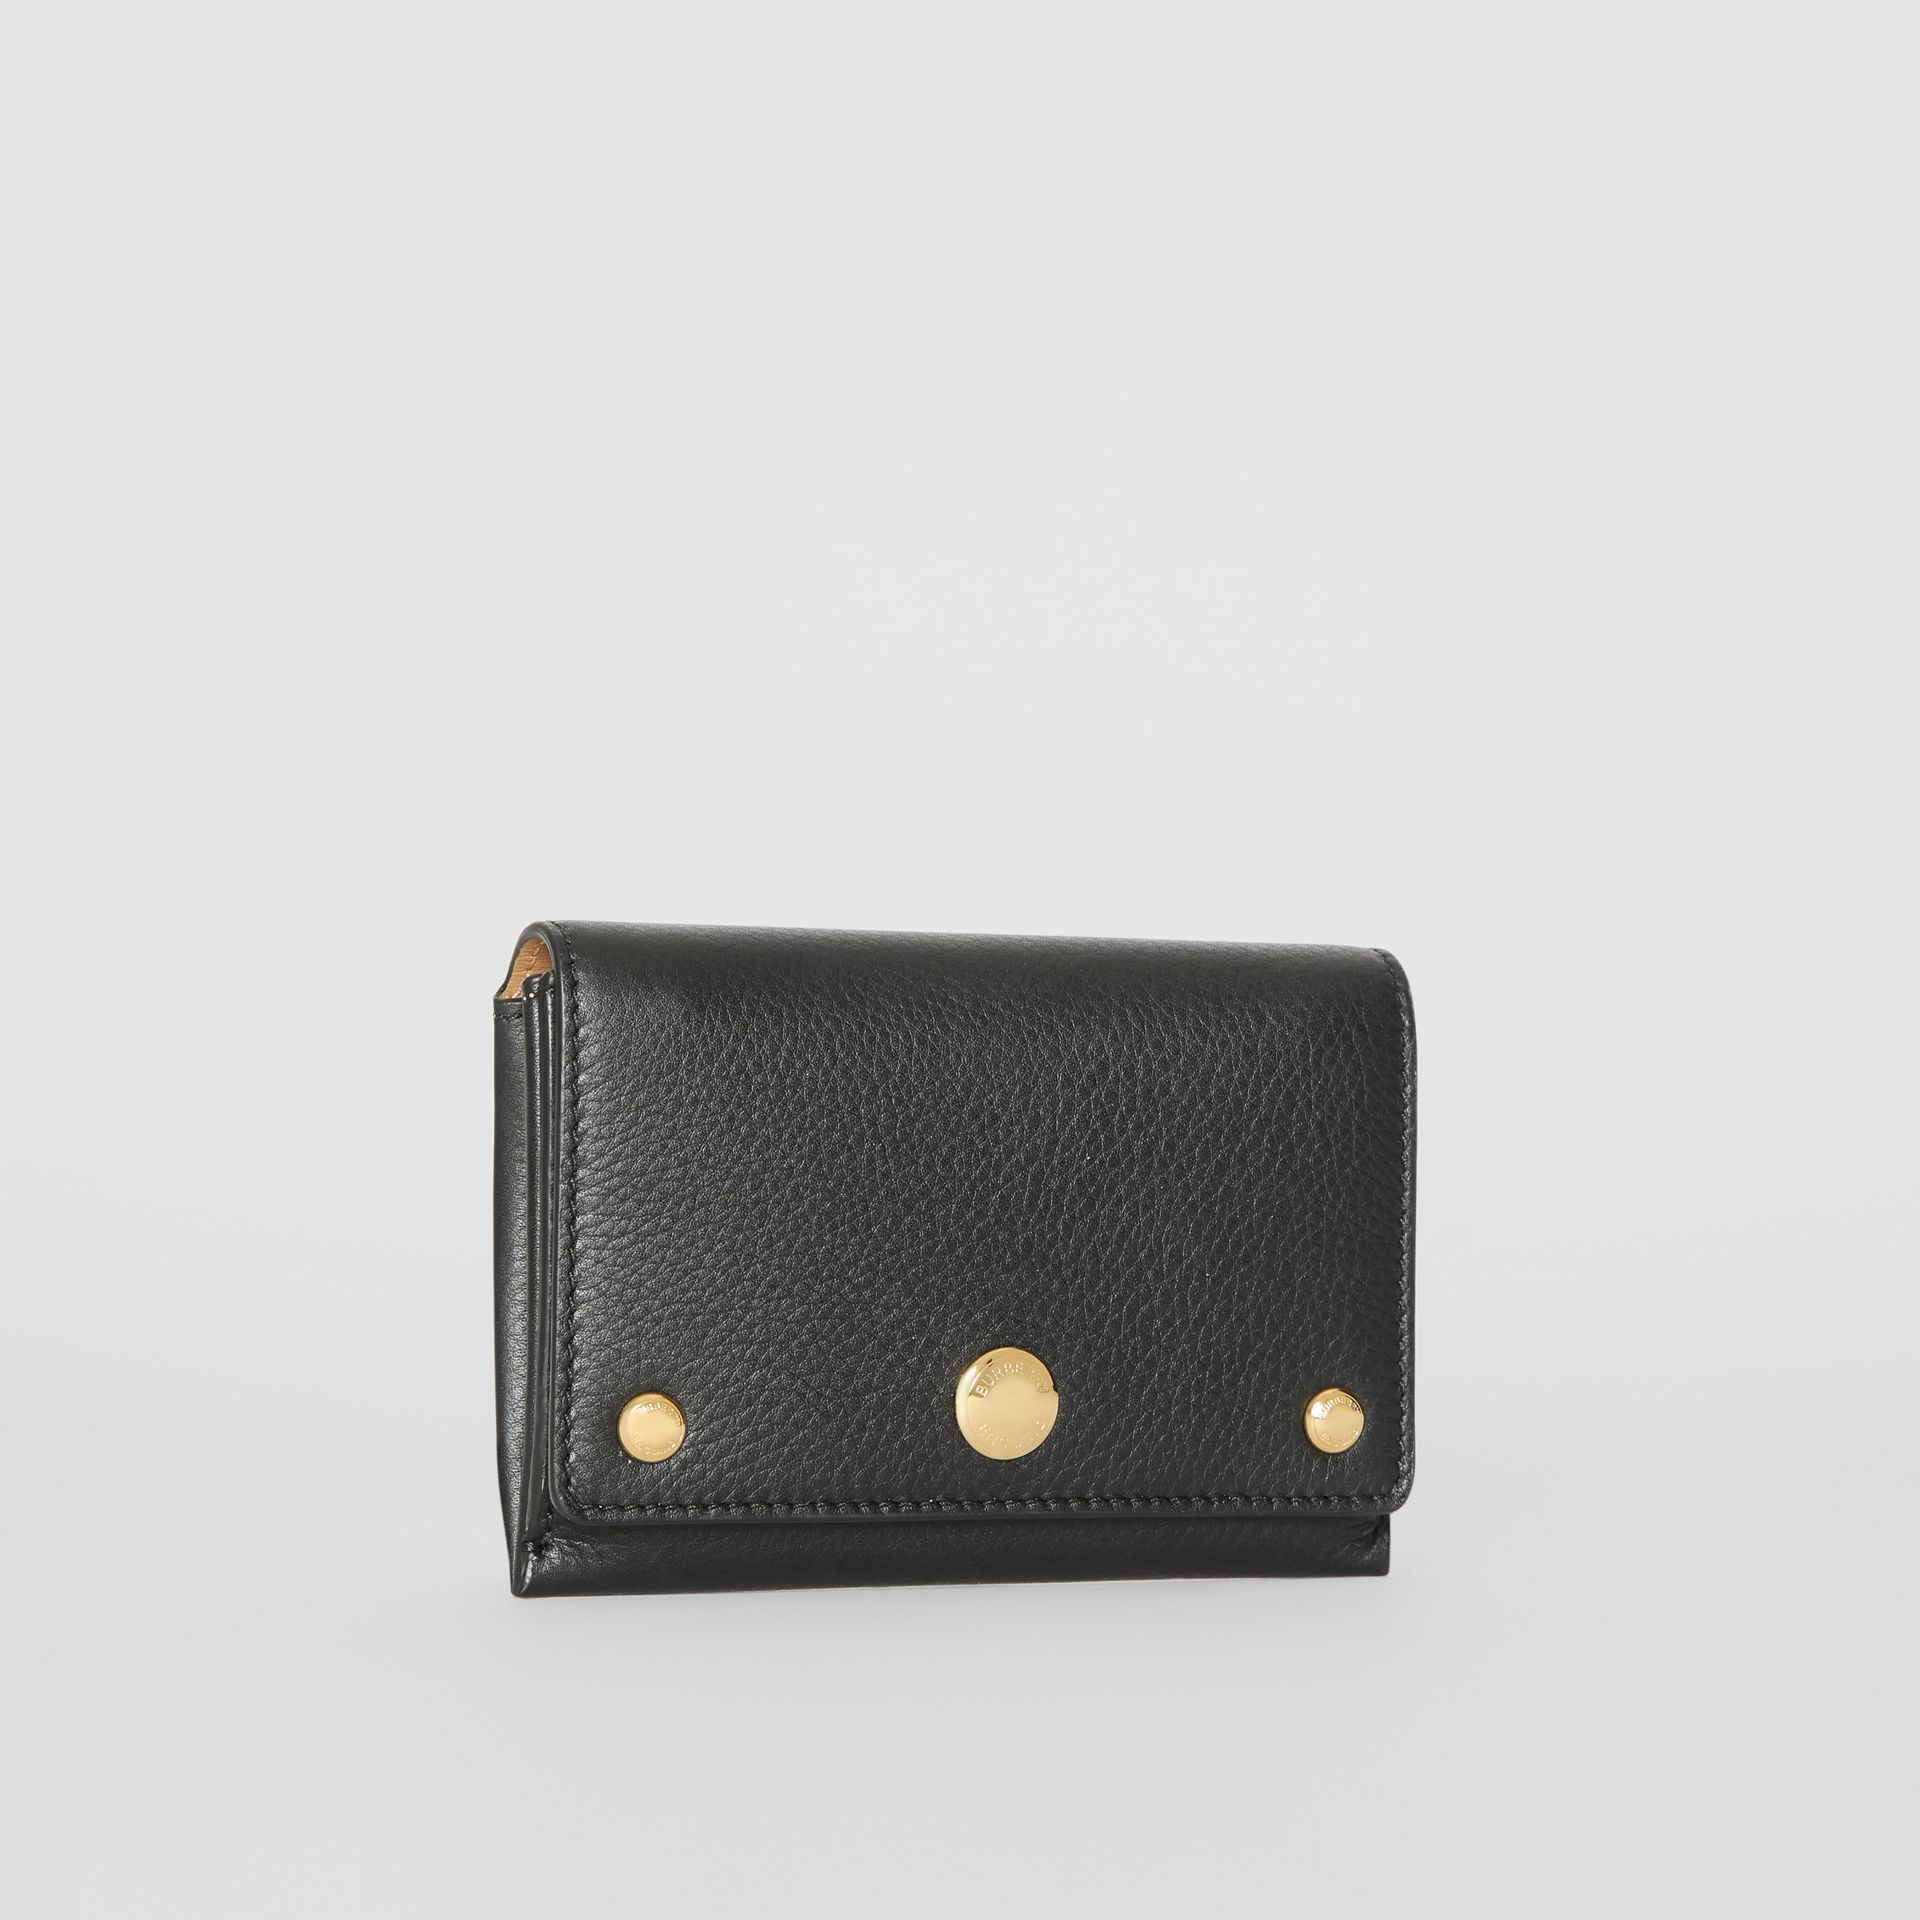 Triple Stud Leather Folding Wallet in Black - Women | Burberry Hong Kong - gallery image 4